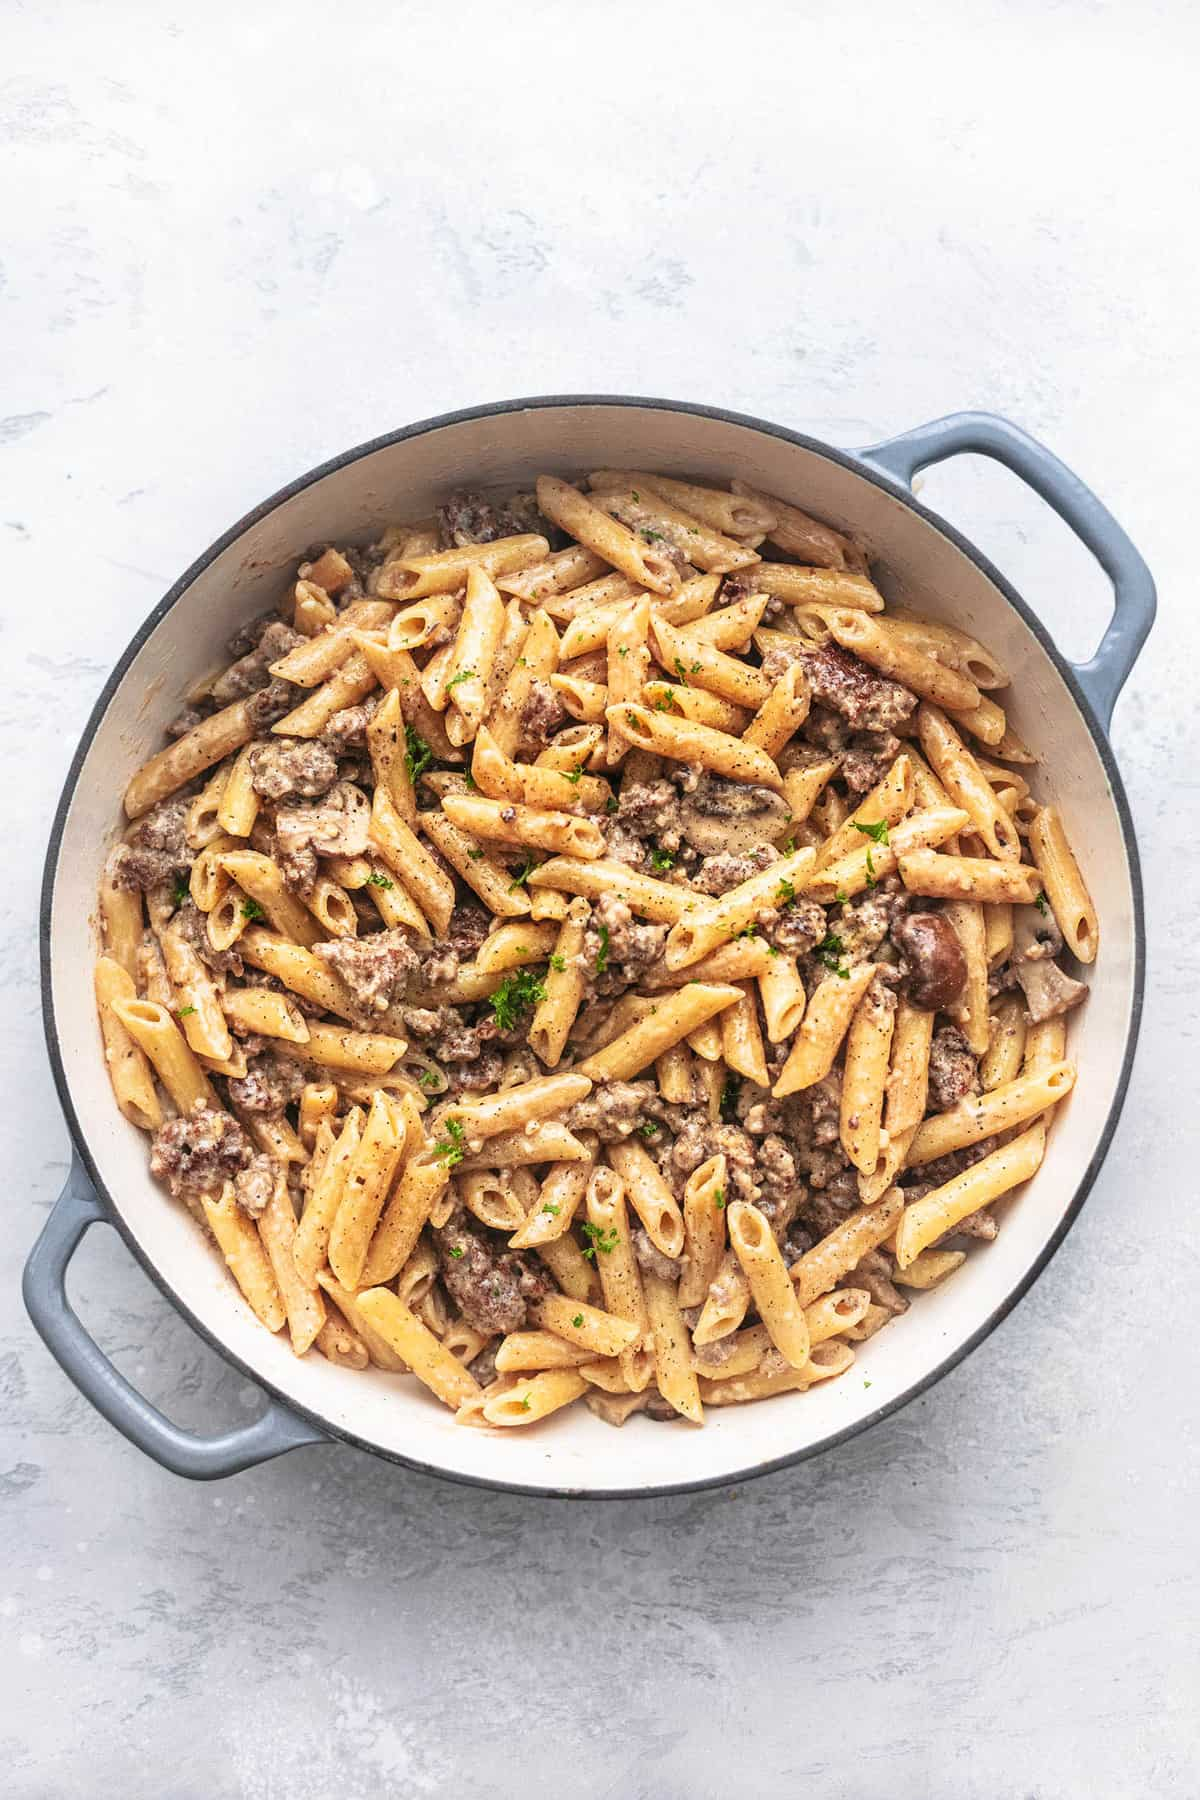 sausage and penne pasta noodles in a skillet on a gray background